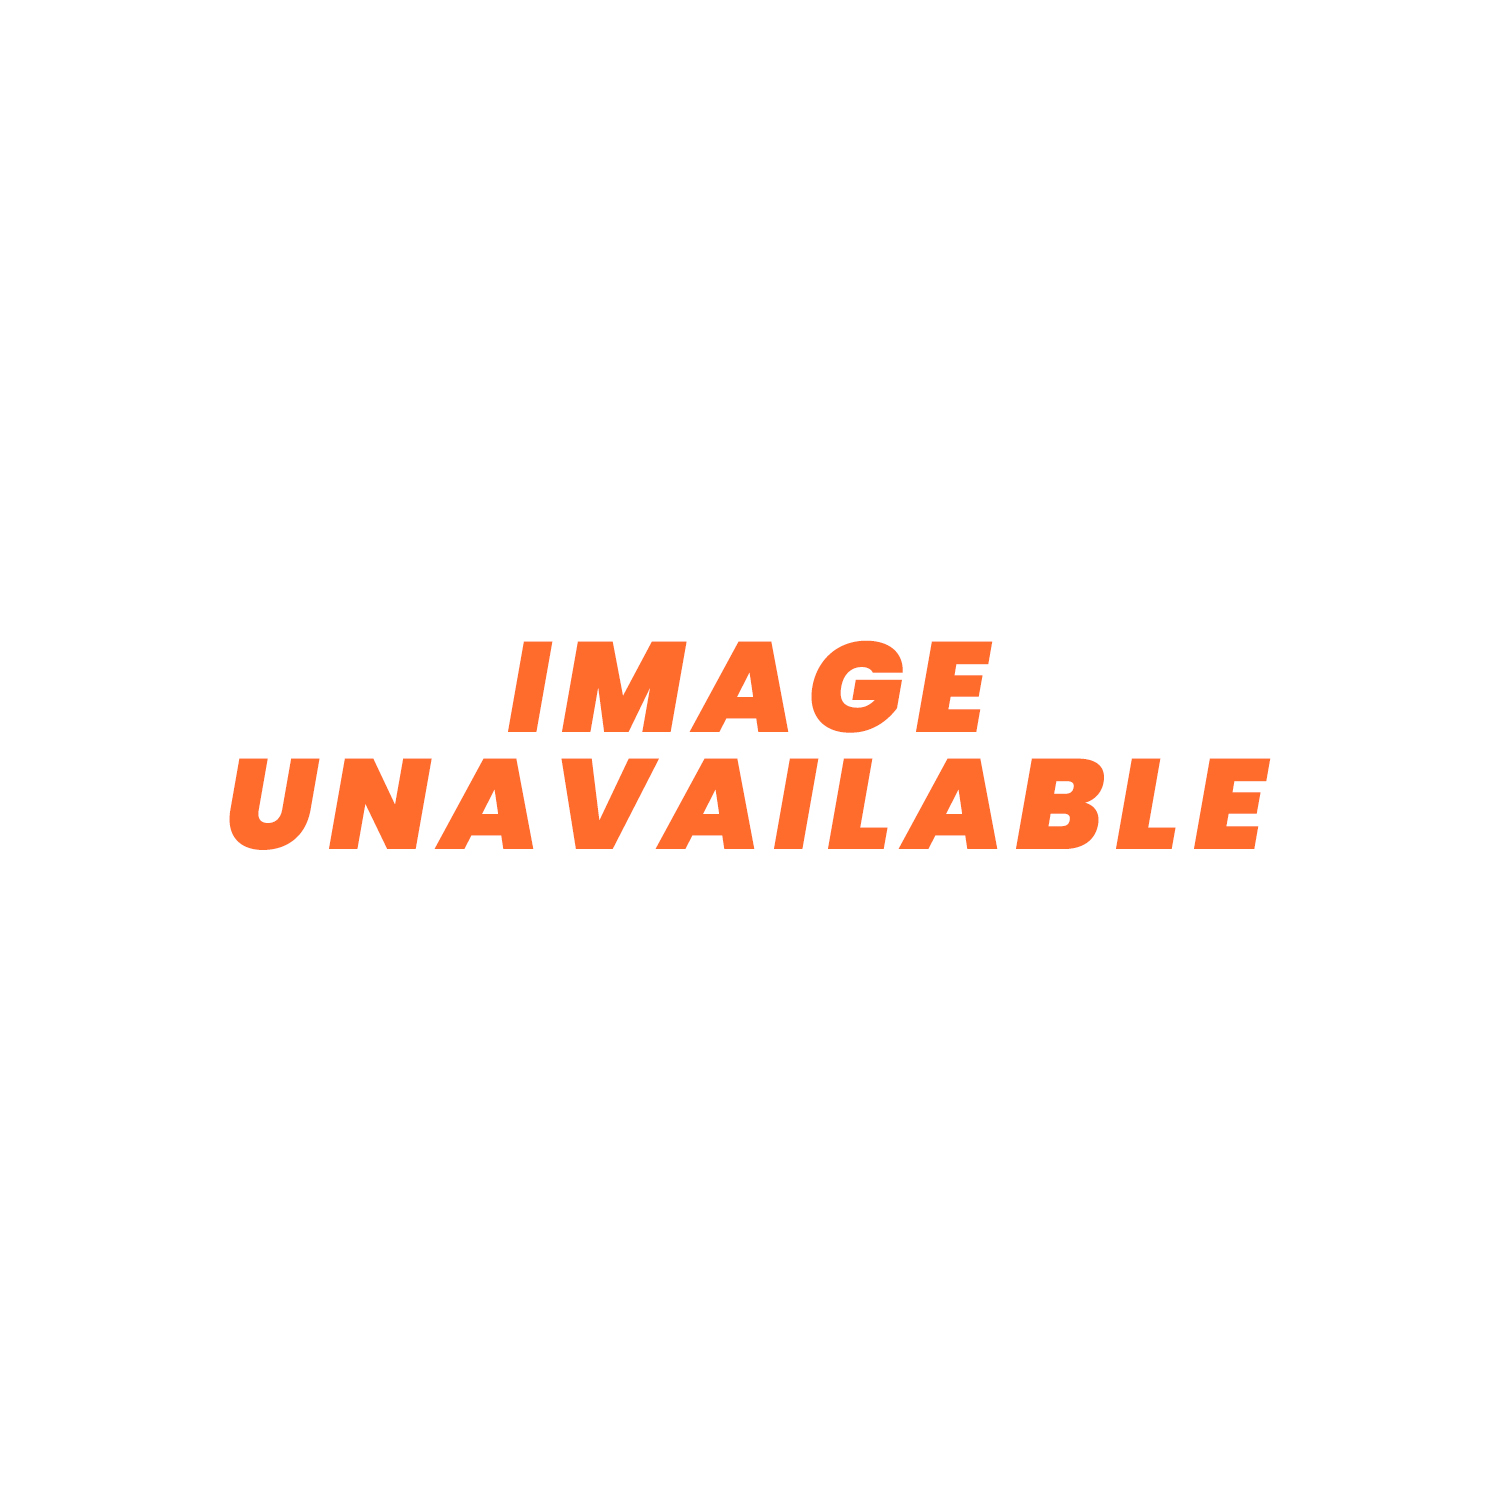 Standard Blade Fuse Box with LEDs - 4 Way